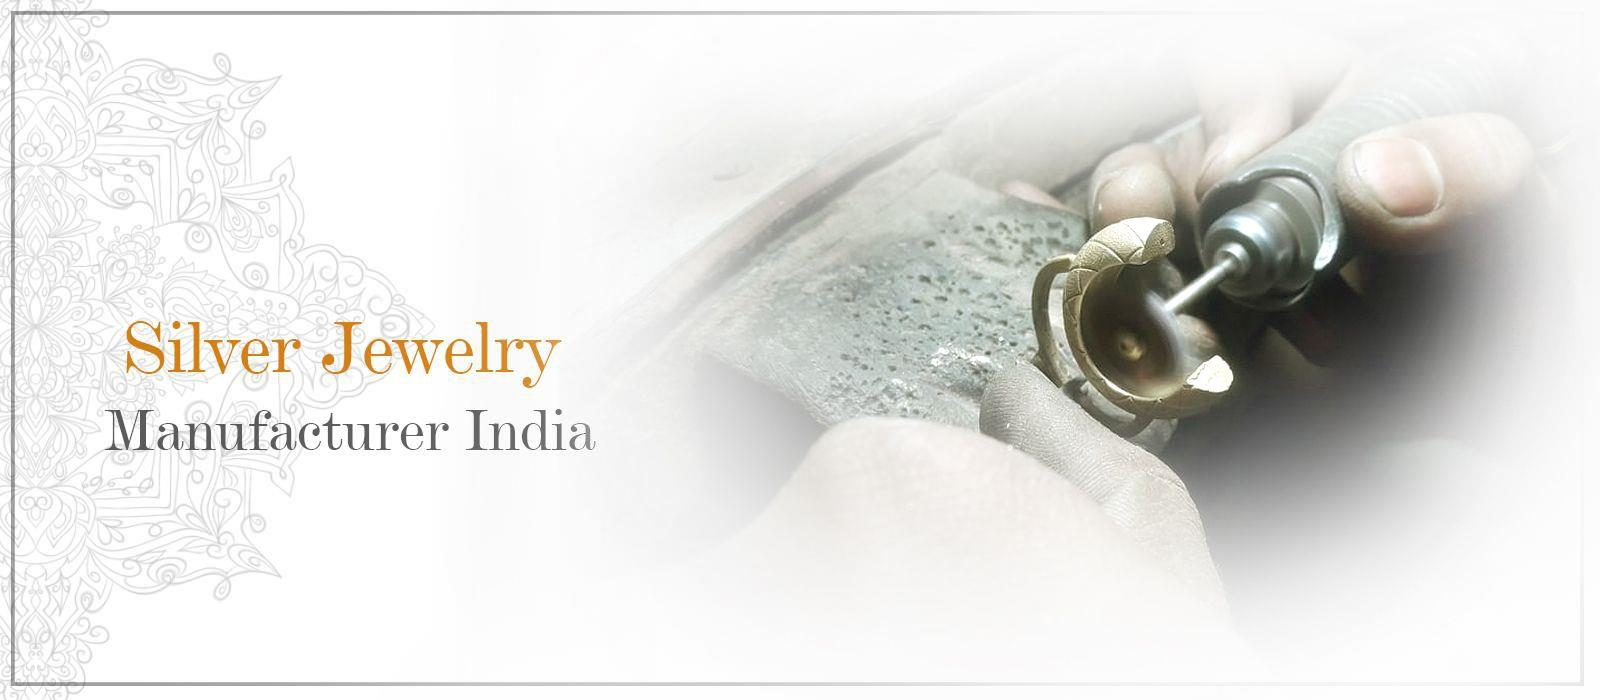 Silver jewelry manufacturers and suppliers in India